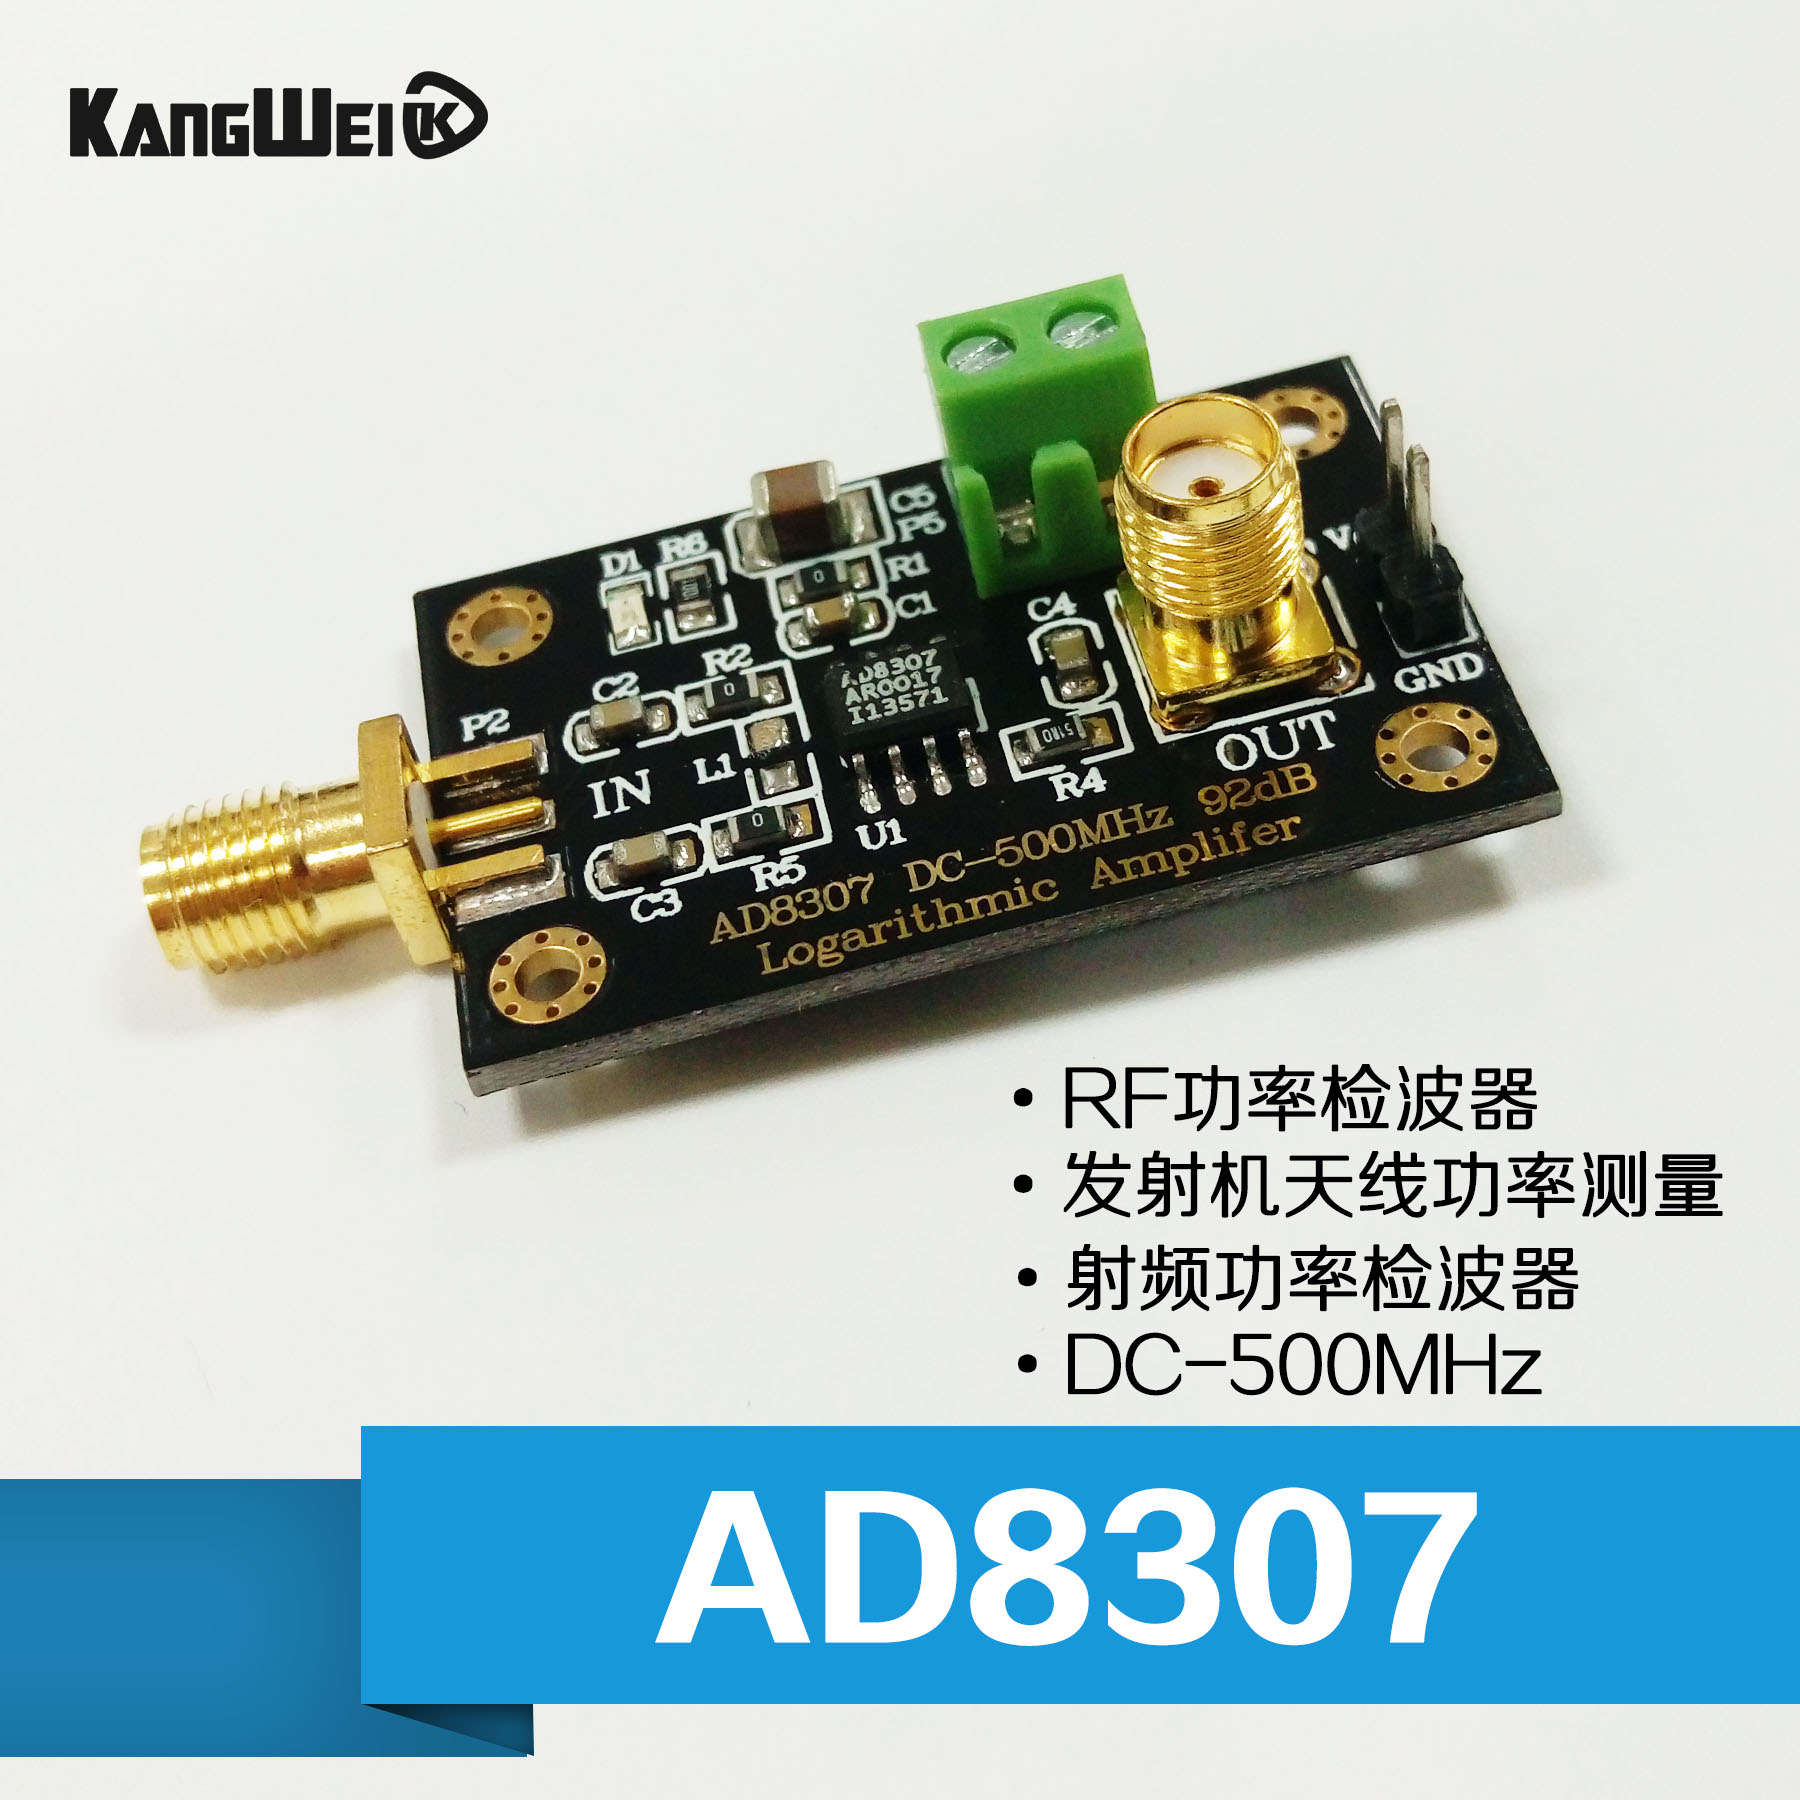 AD8307 radio frequency power detector module, logarithmic amplifier, DC-500MHz transmitter, antenna power ad8314 module 45db rf detector controller 100mhz 2 7ghz radio frequency signal measurement